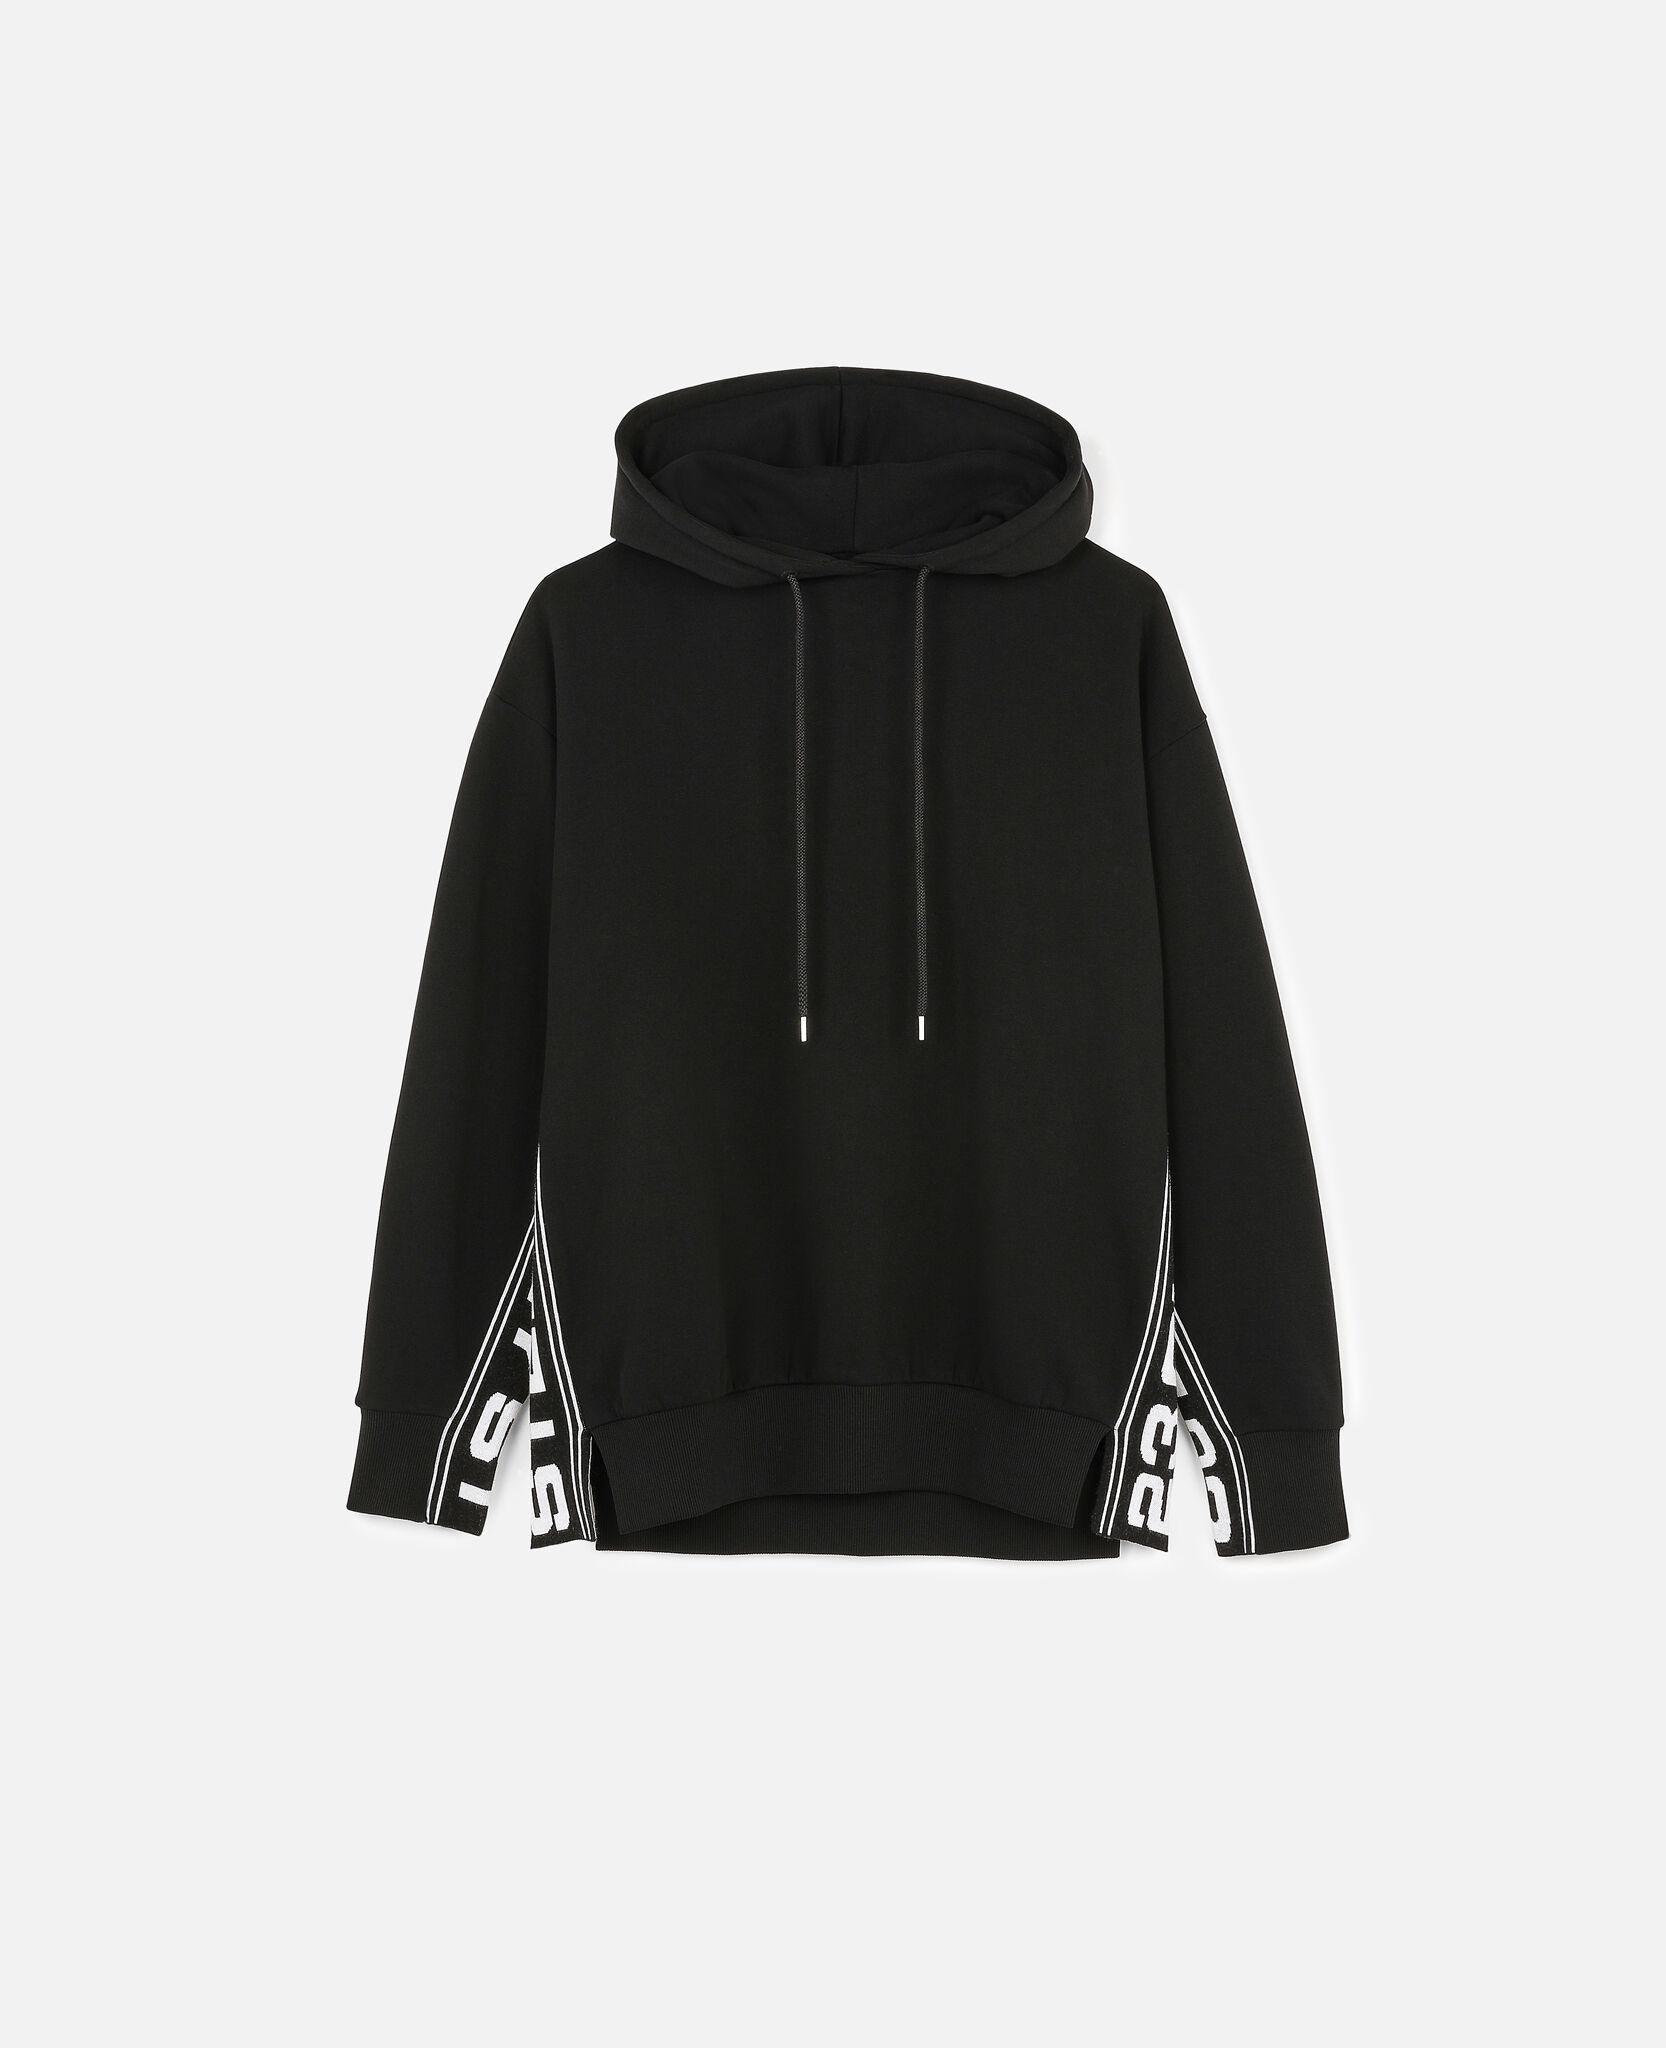 23 OBS Knitted Hoodie 2